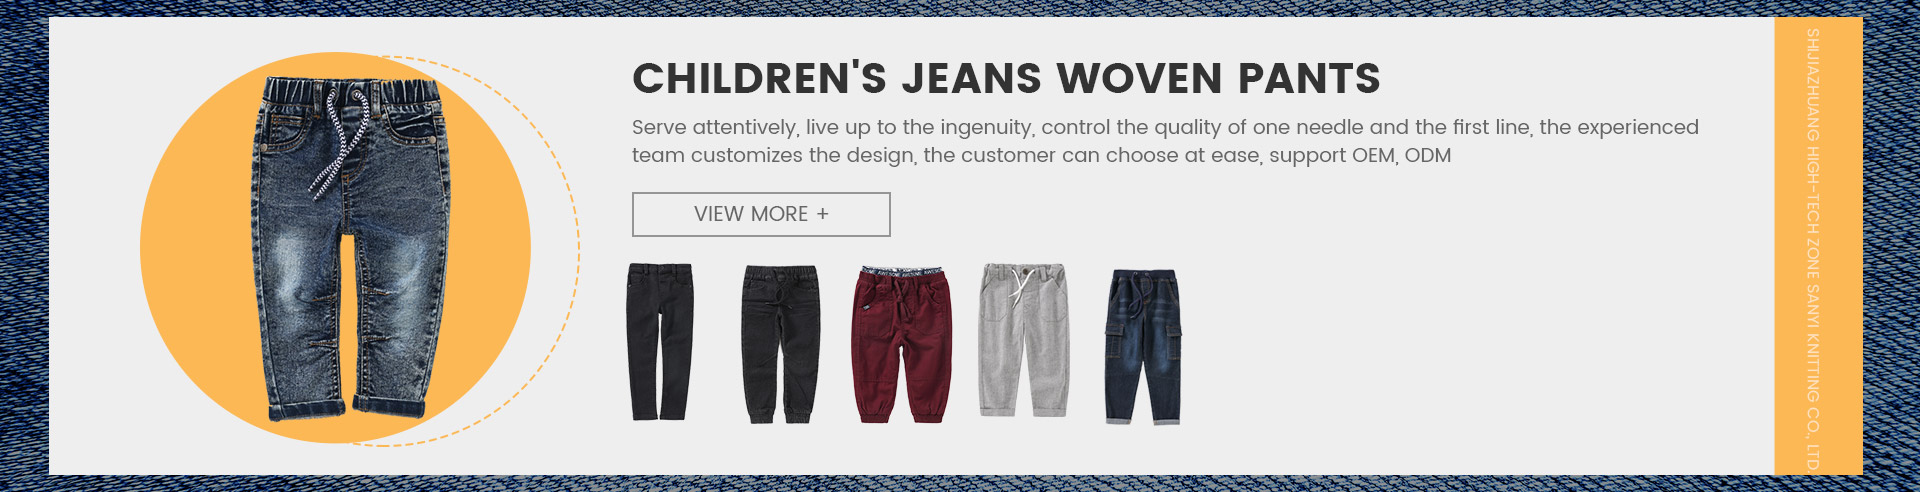 Childrens Jeans Woven Pants